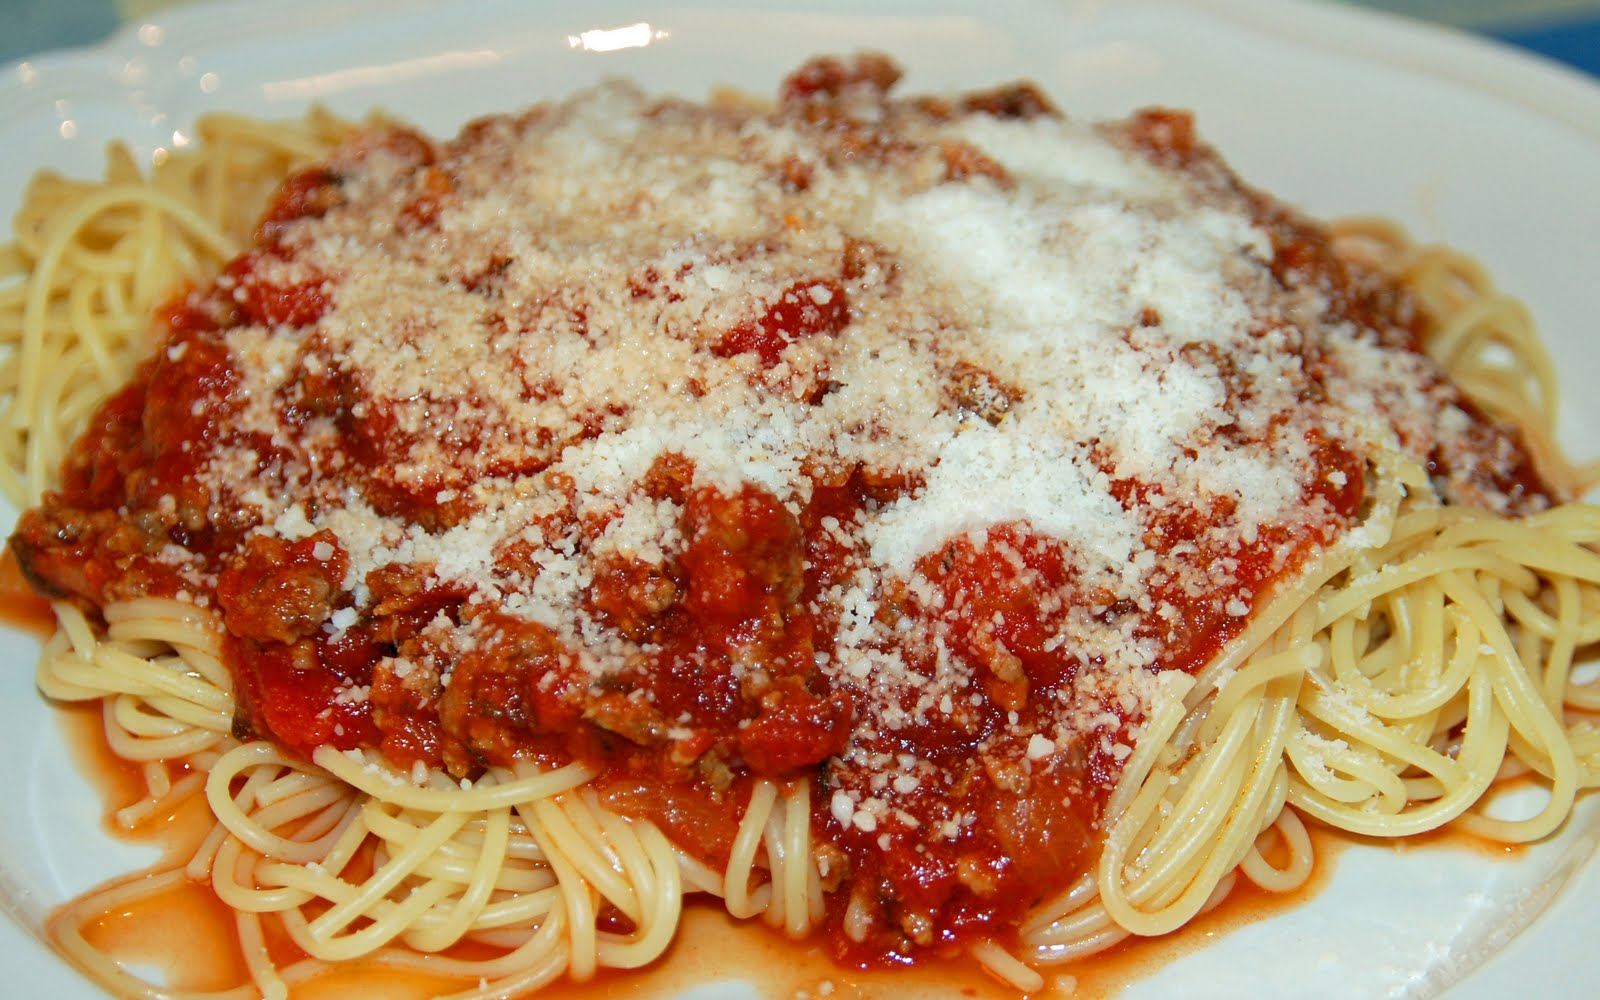 Southern Lady's Recipes: Spaghetti with Meat Sauce